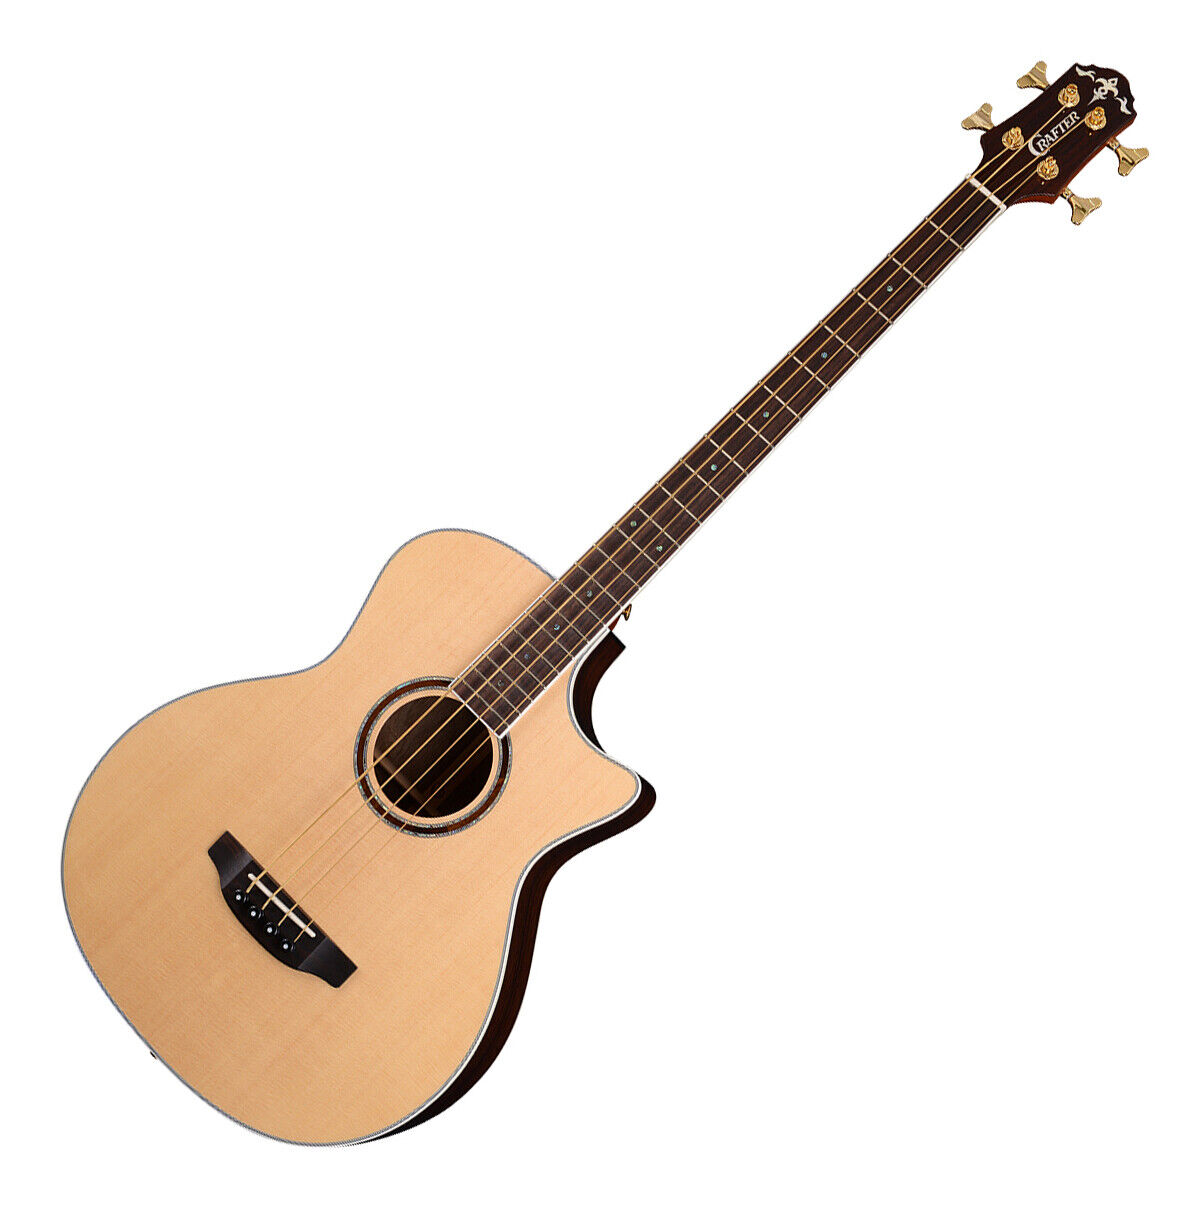 Crafter KGAB-24 SP Plus Grand Auditorium Sitka Spruce Top Natural Acoustic Bass